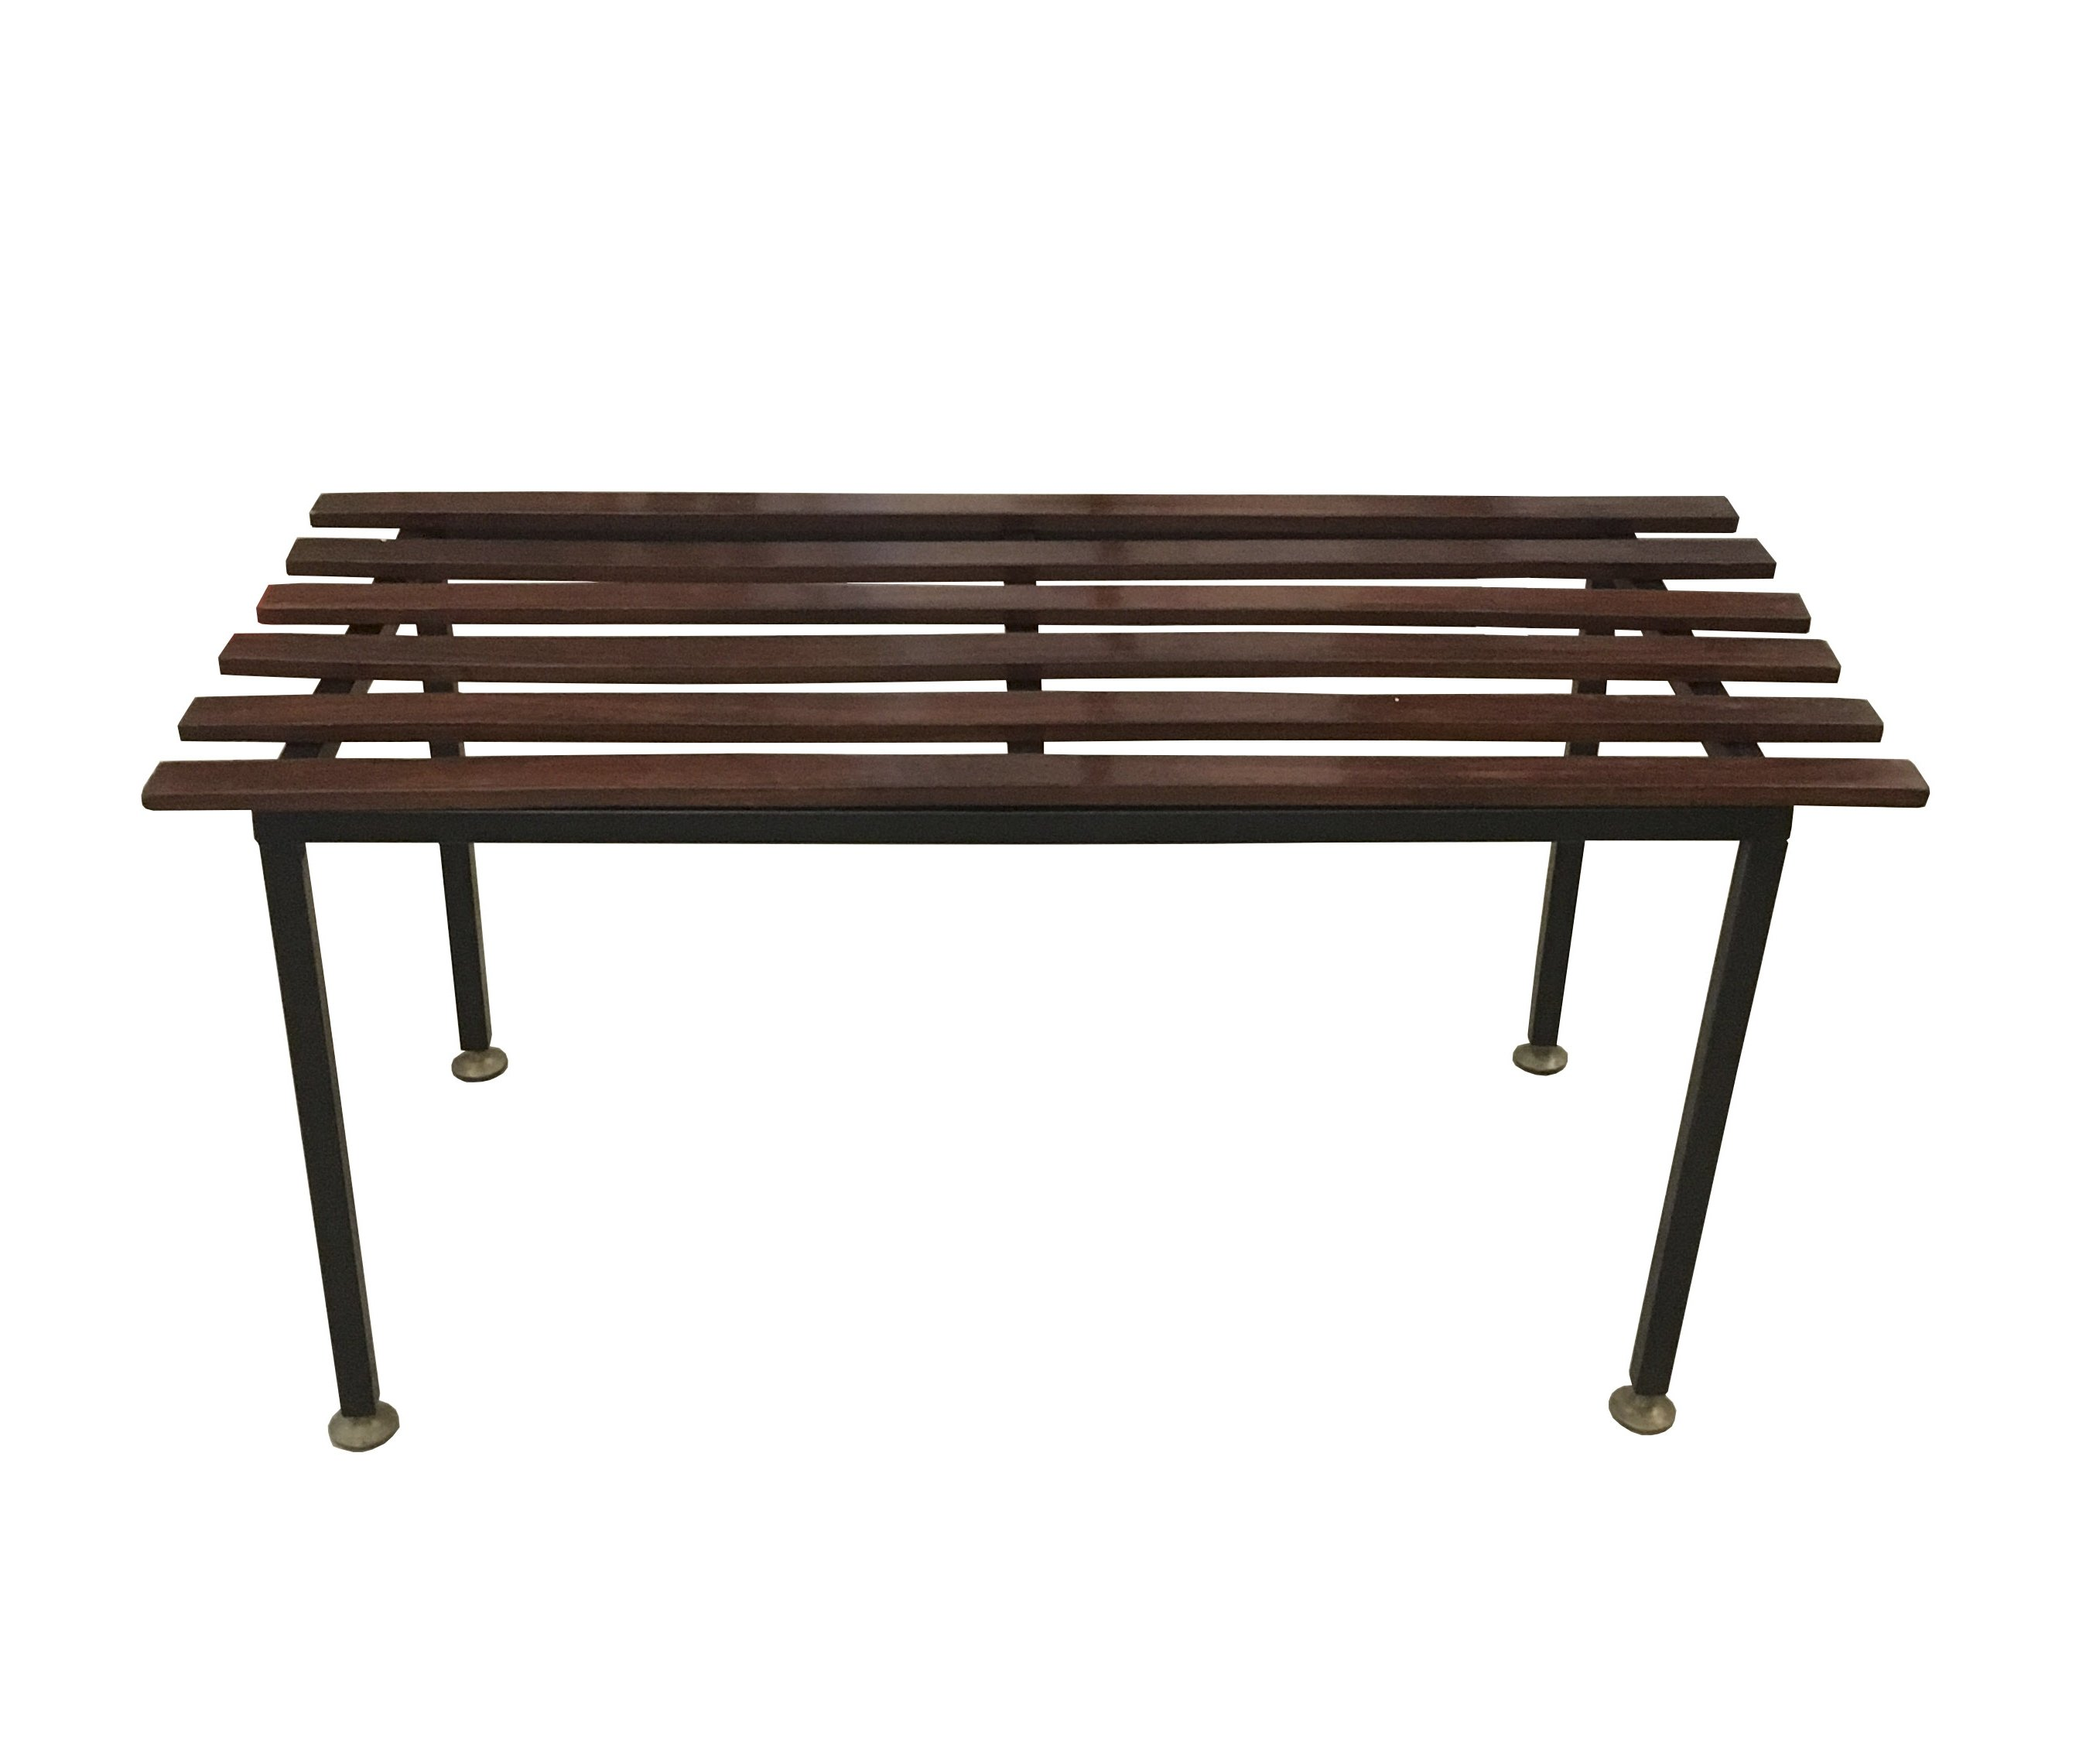 Marvelous 1960S Small Wooden Bench With Metal Feet Brass Terminals Short Links Chair Design For Home Short Linksinfo